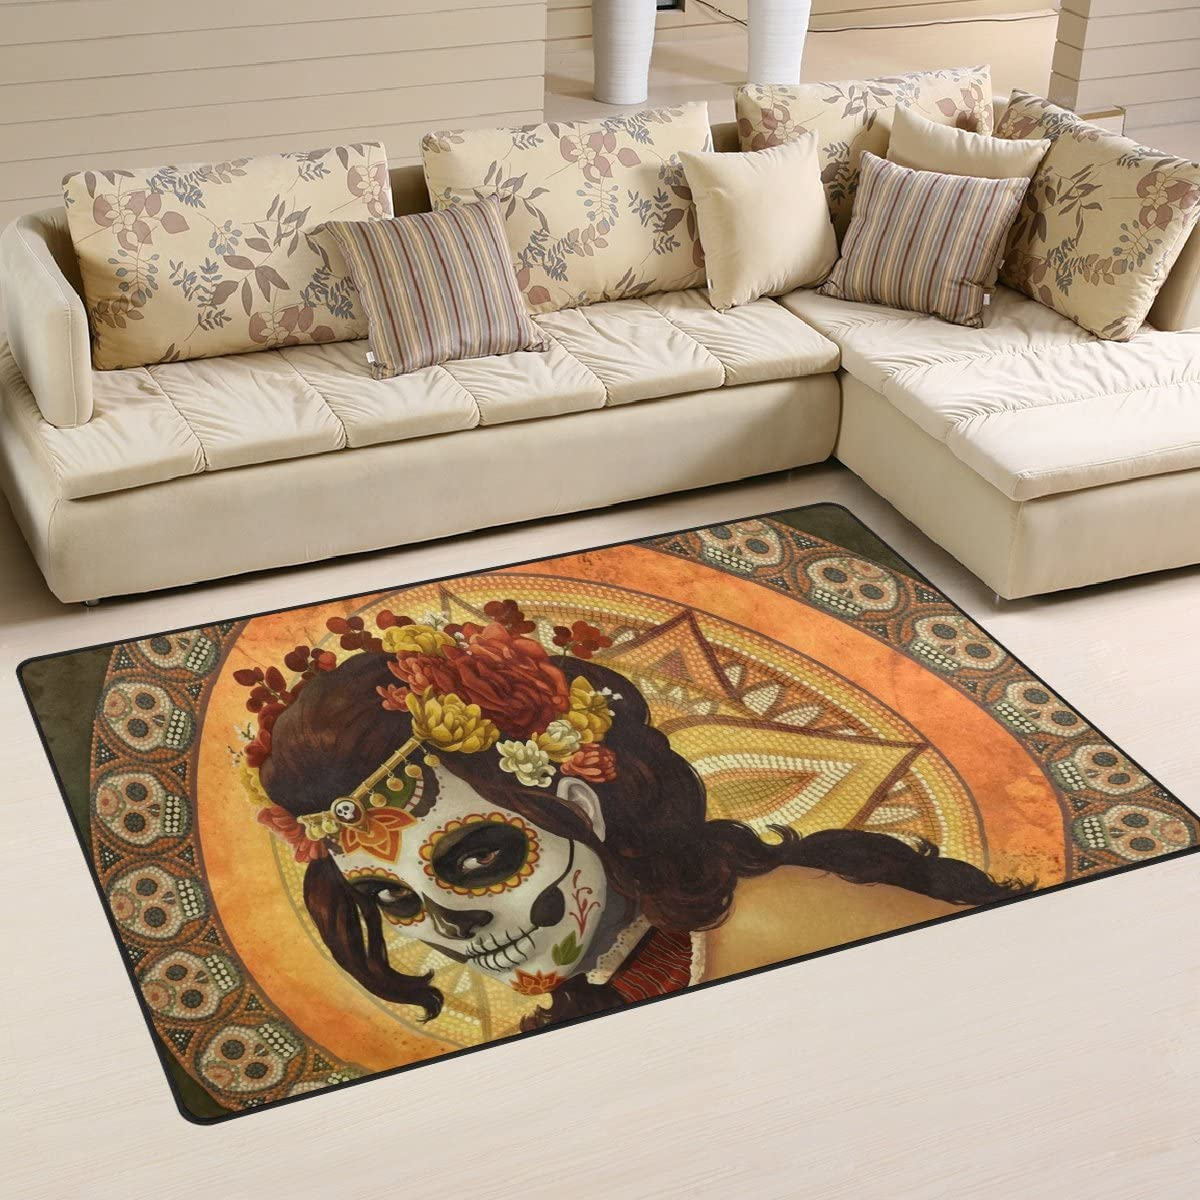 Yochoice Non-slip Area Rugs Home Decor, Vintage Retro Day of the Dead Sugar Skull Floor Mat Living Room Bedroom Carpets Doormats 60 x 39 inches